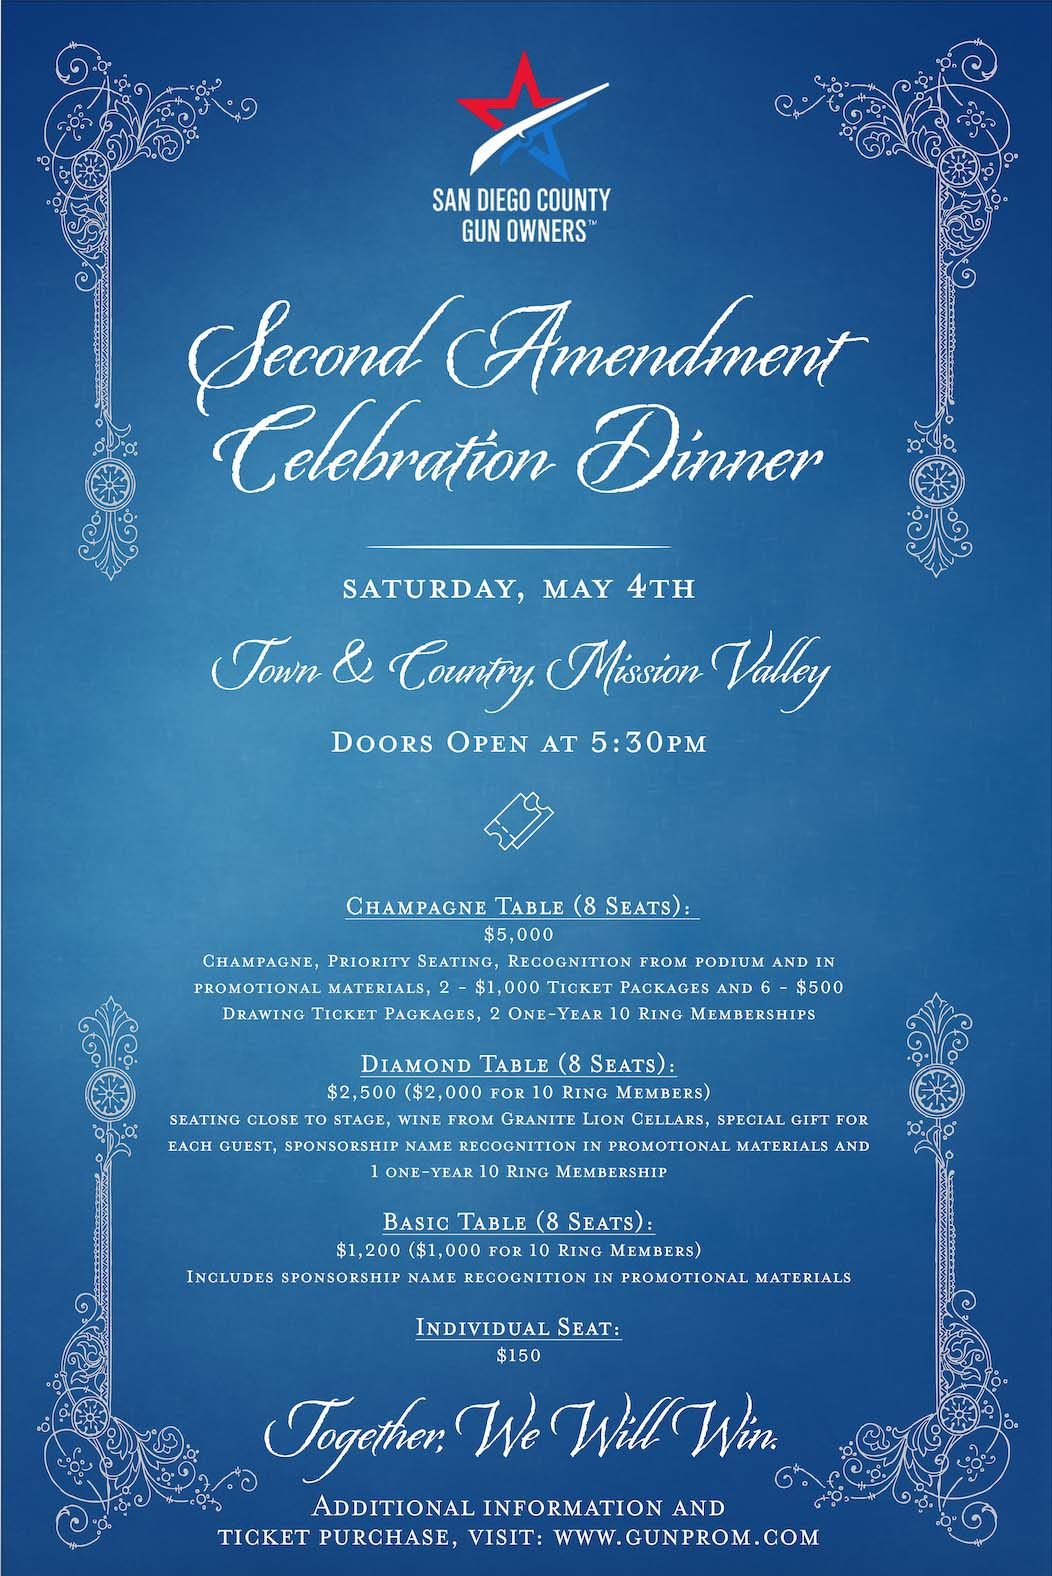 Second Amendment Celebration